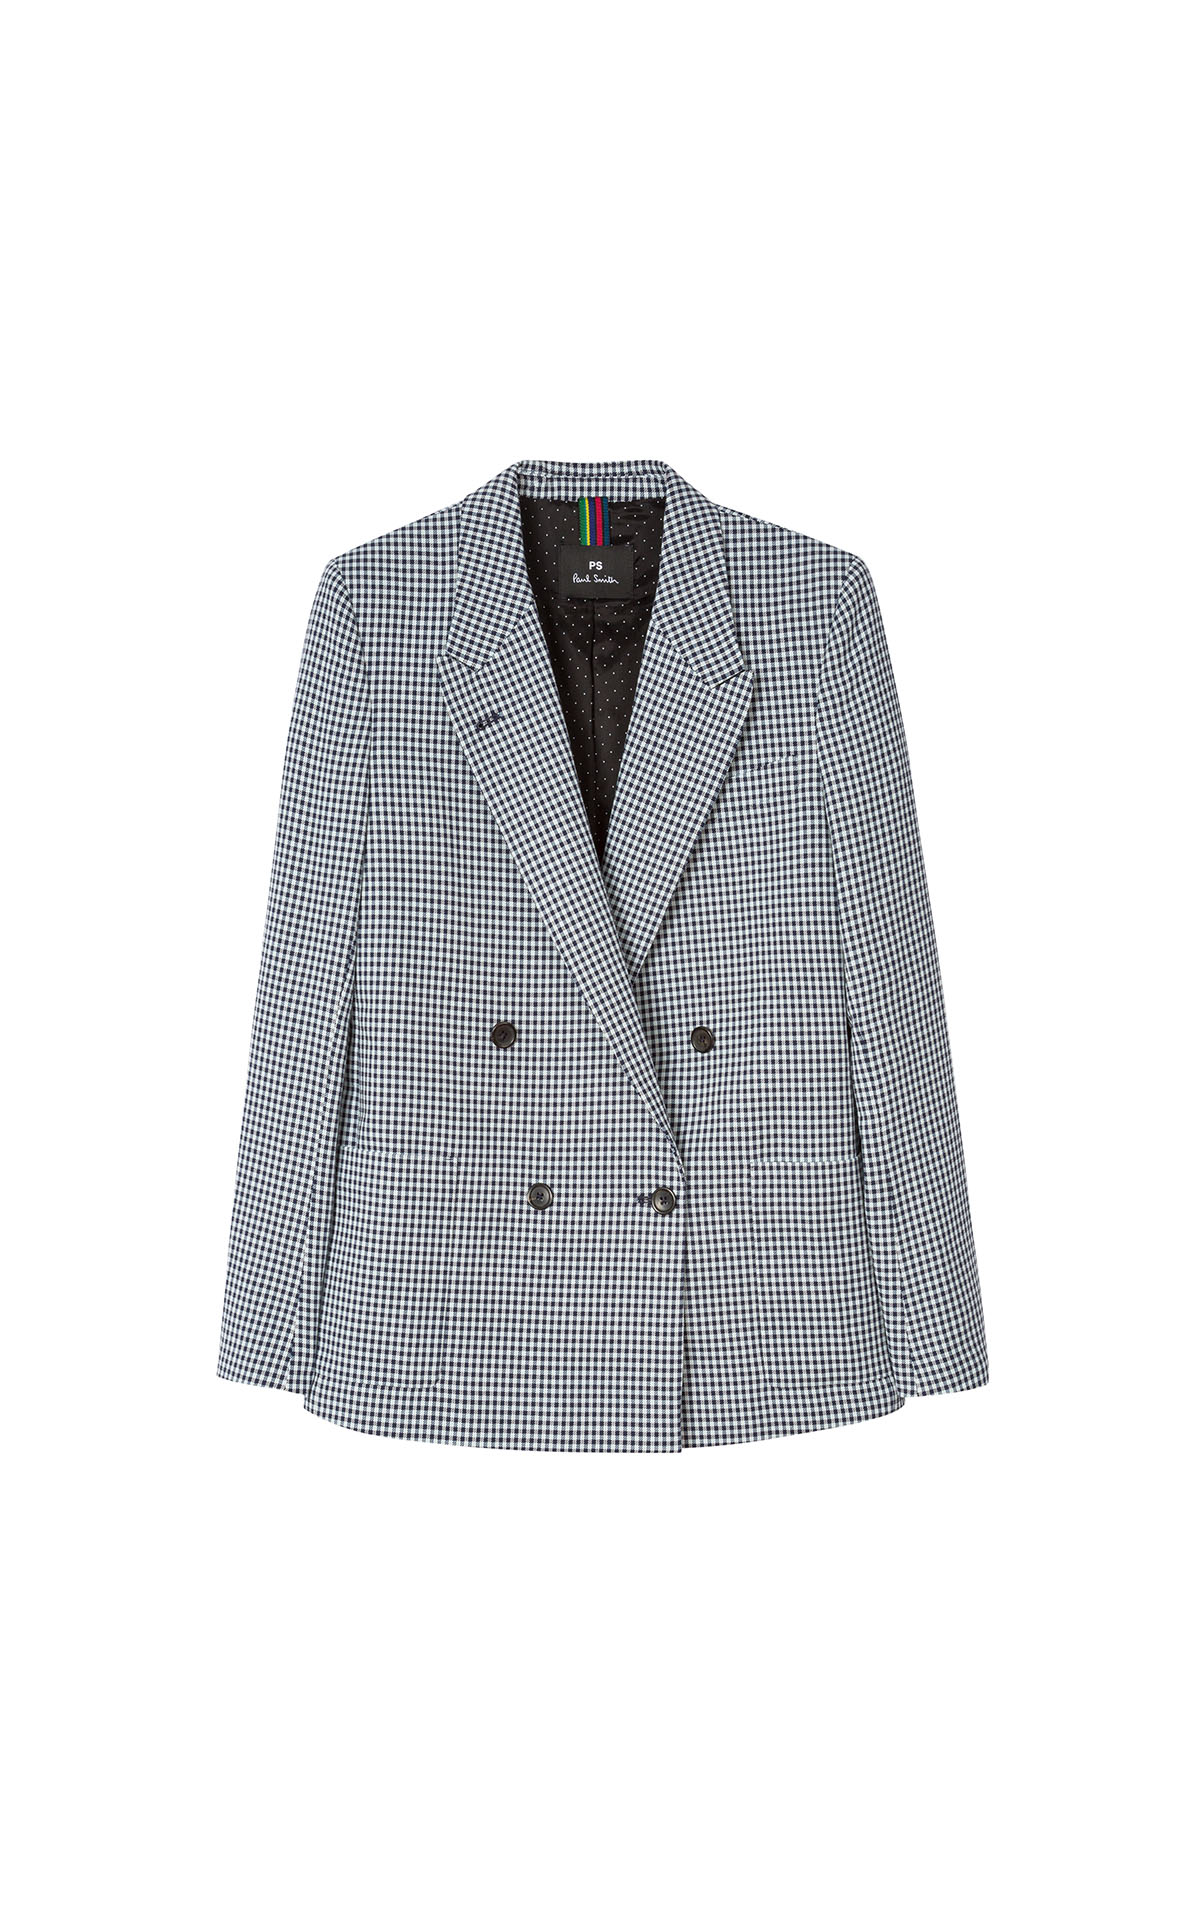 Paul Smith Women's Black Check Jacket at The Bicester Village Shopping Collection